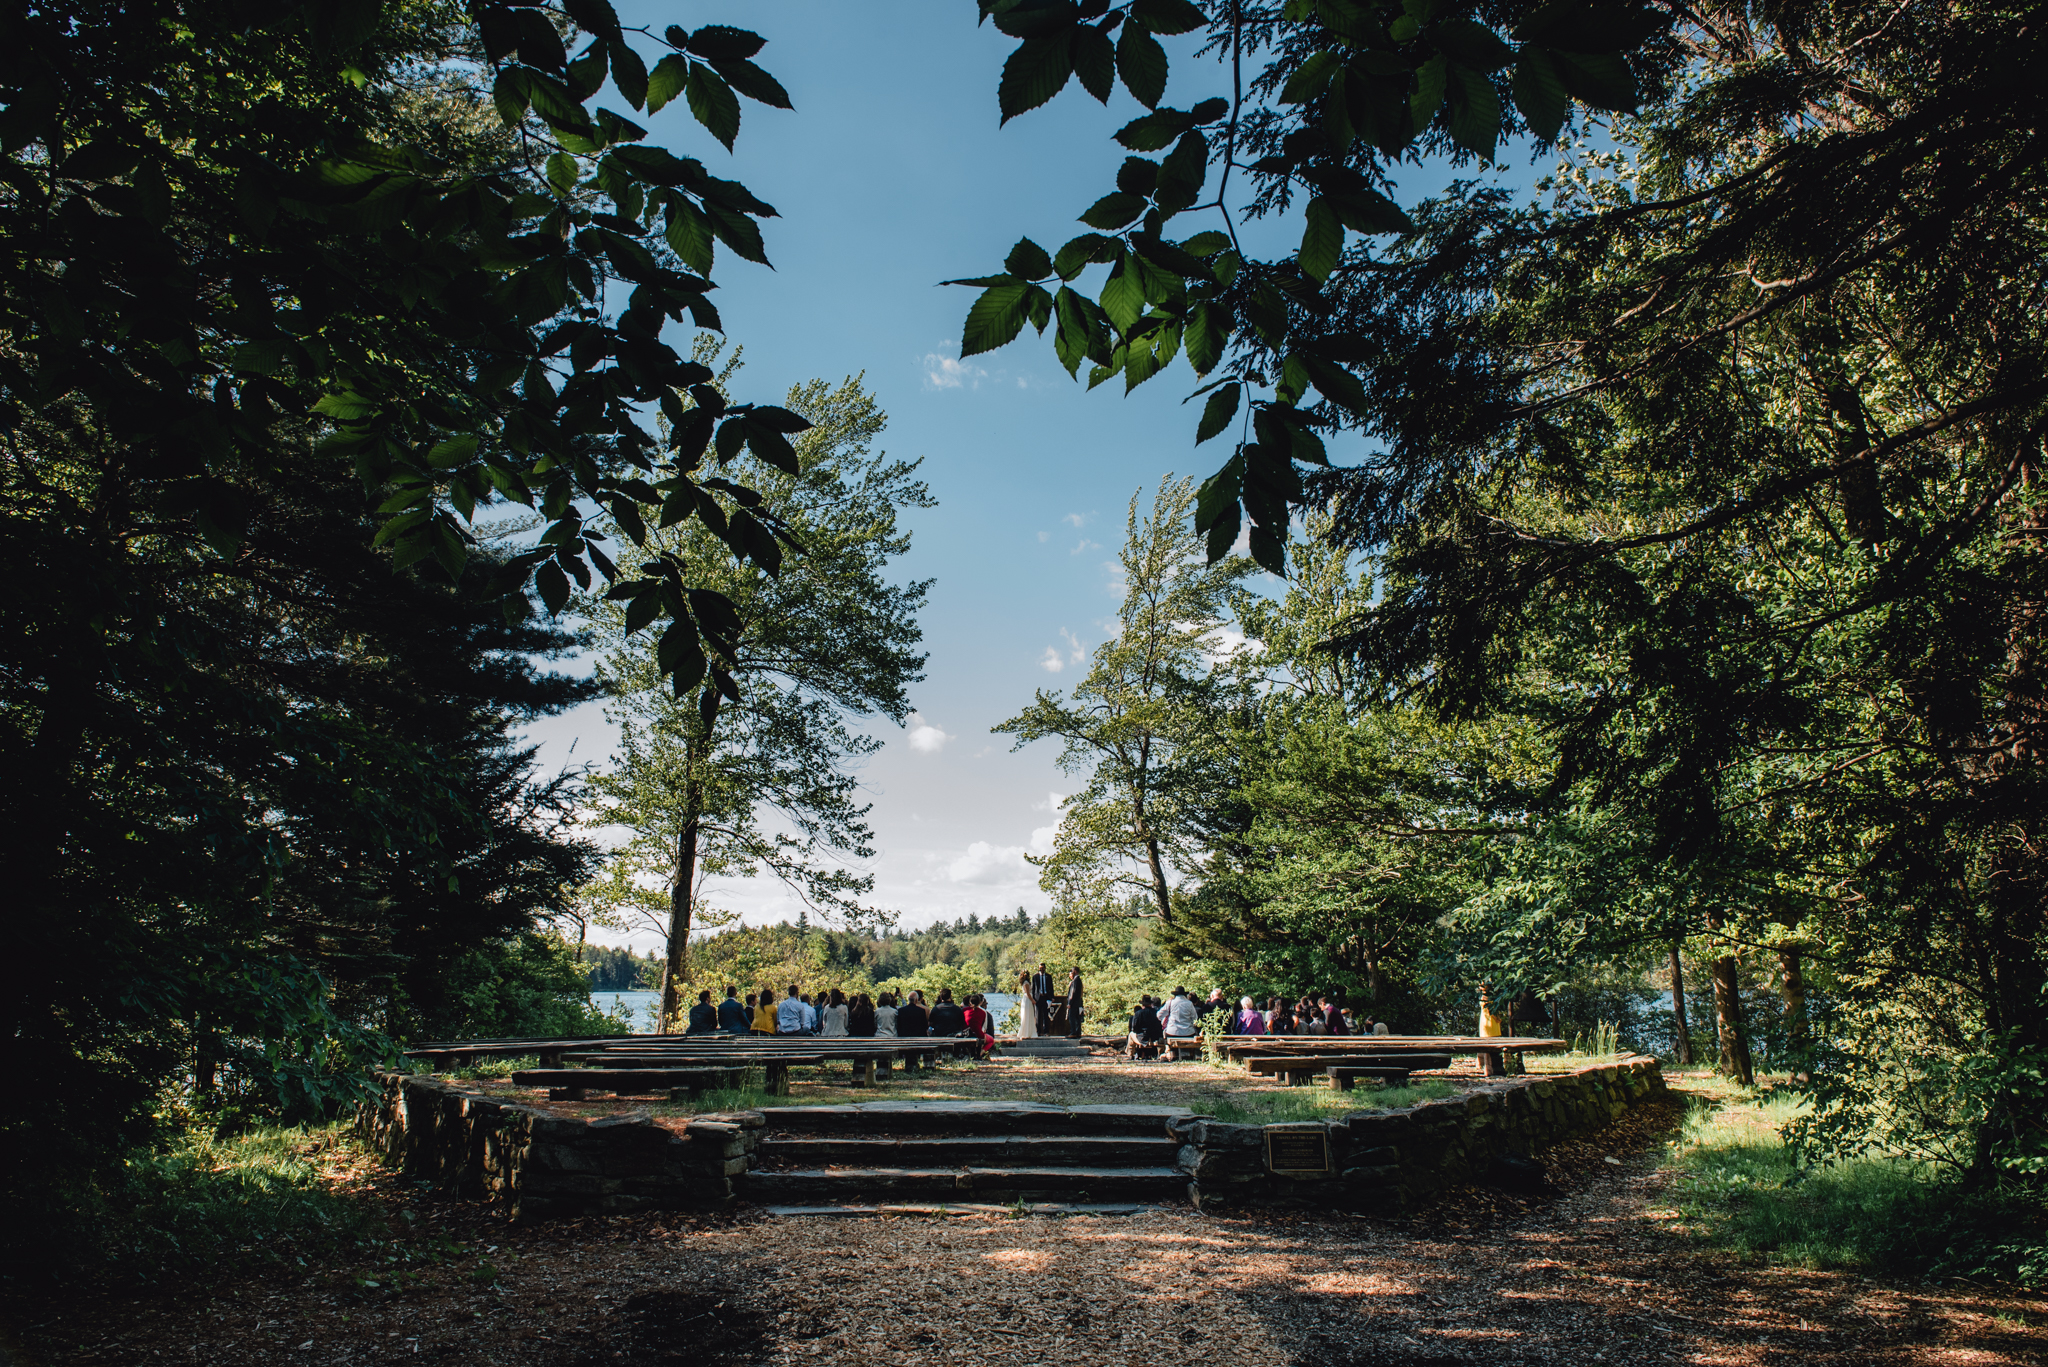 Summer Camp Wedding Photography June 2017 Massachusetts Berkshires Outdoor Wedding Photography Novella Photography Matt and Paulette Griswold (79).jpg